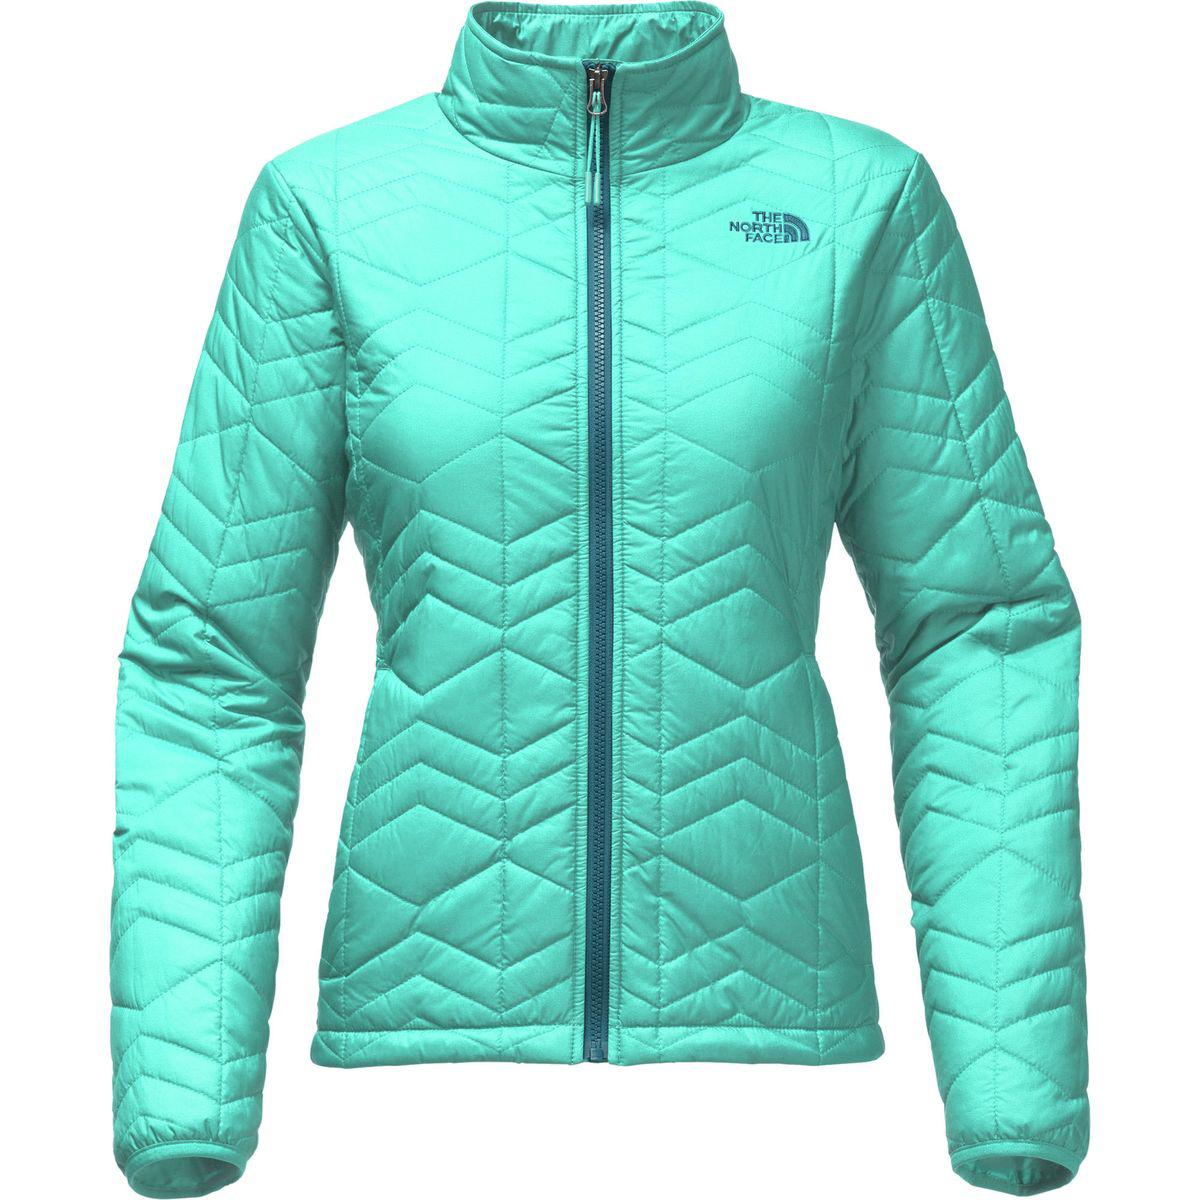 66c35221af Lyst - The North Face Bombay Insulated Jacket in Blue